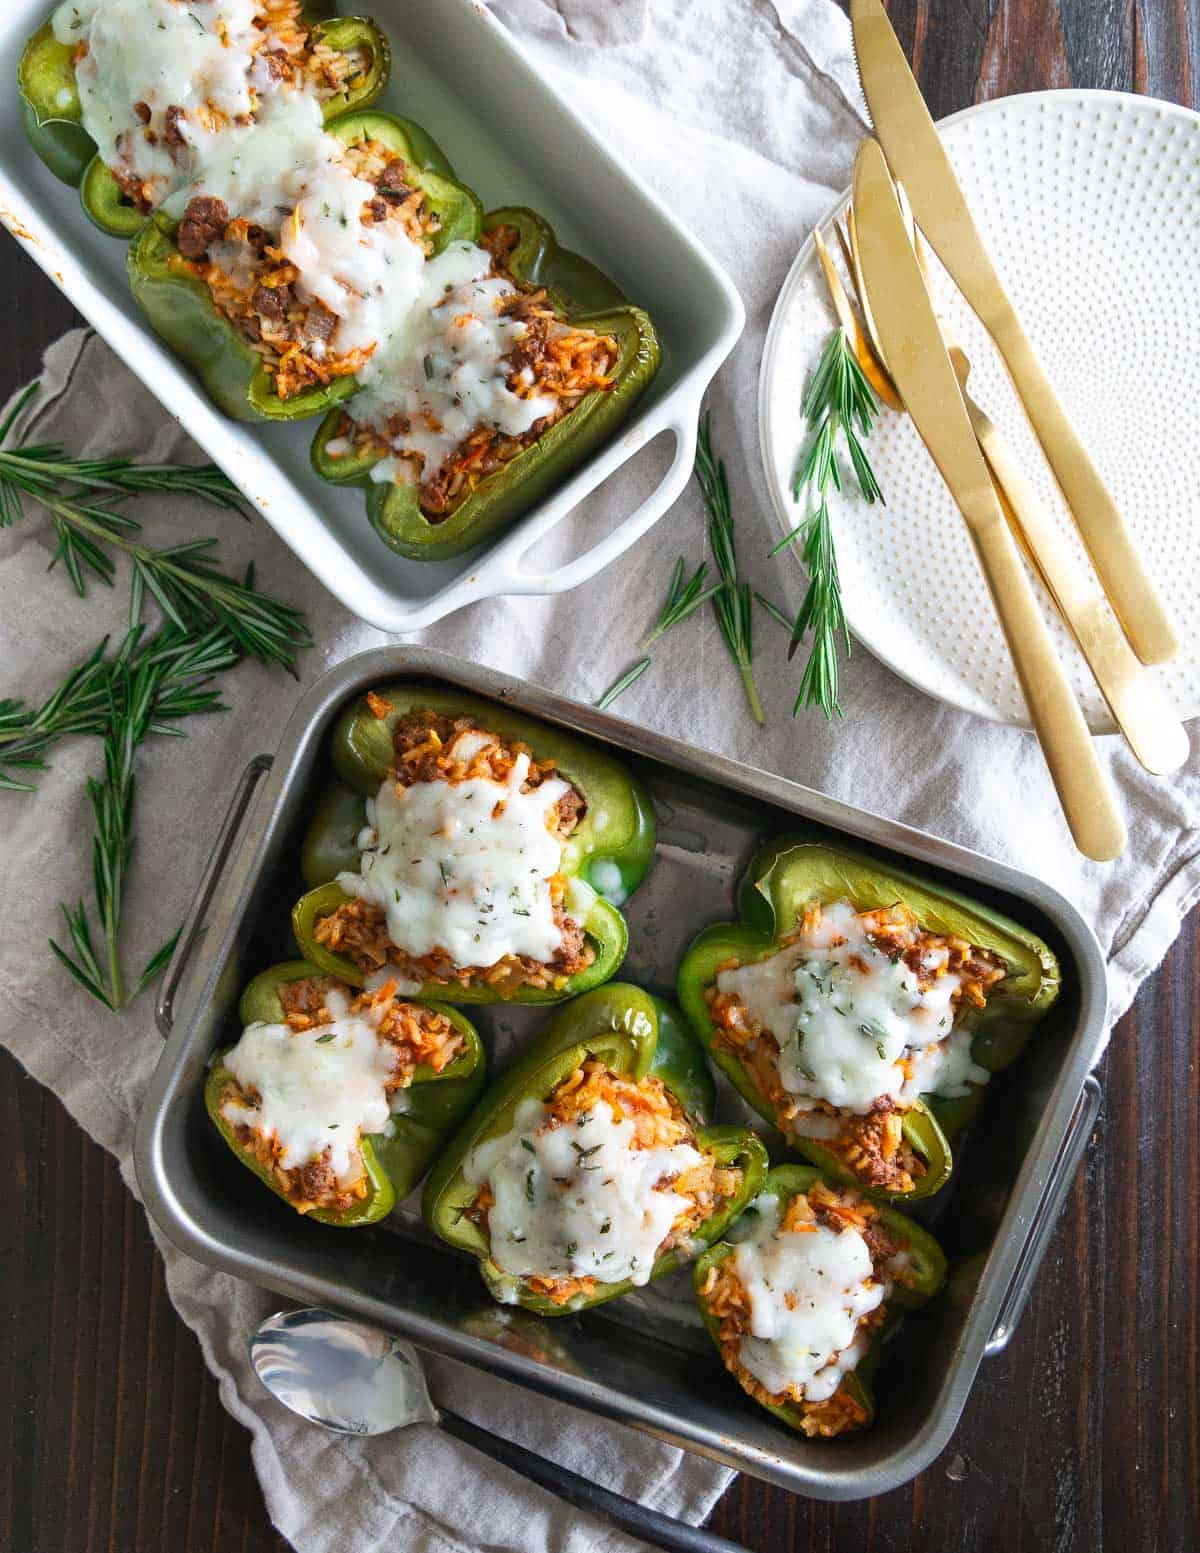 Easy stuffed pepper recipe with bison, rice and vegetables topped with melted cheddar cheese.